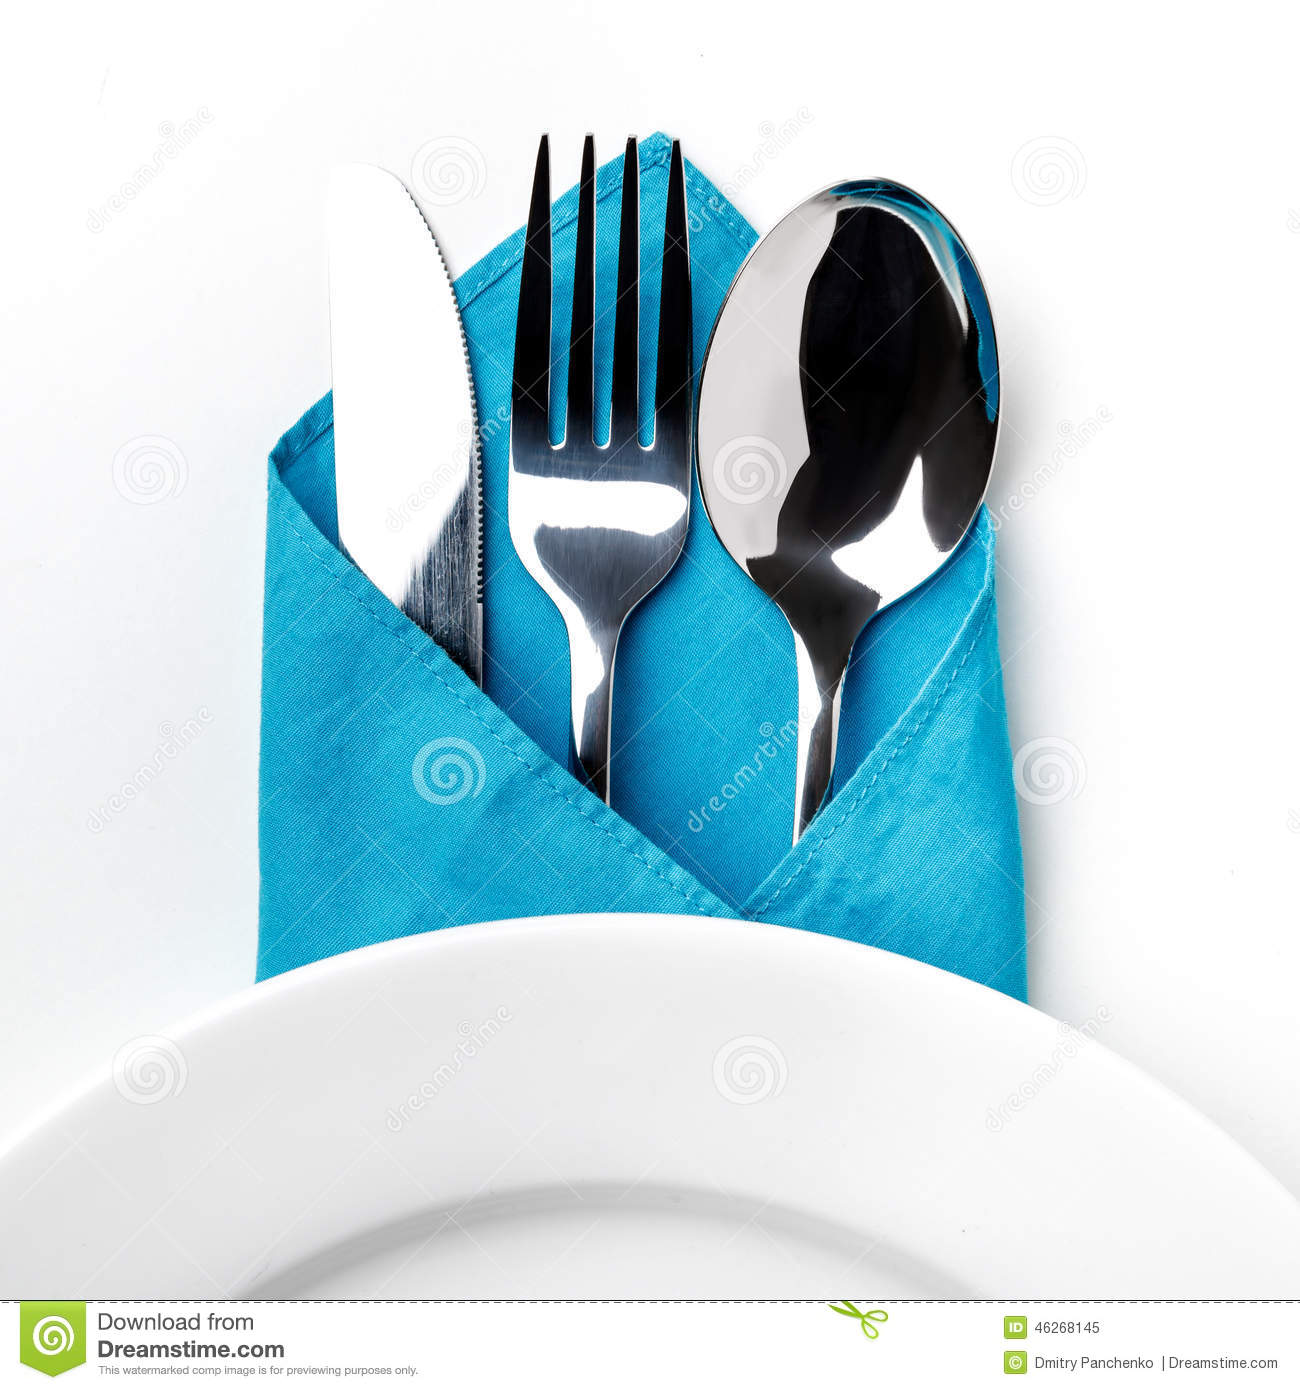 Knife, Fork, Spoon isolated